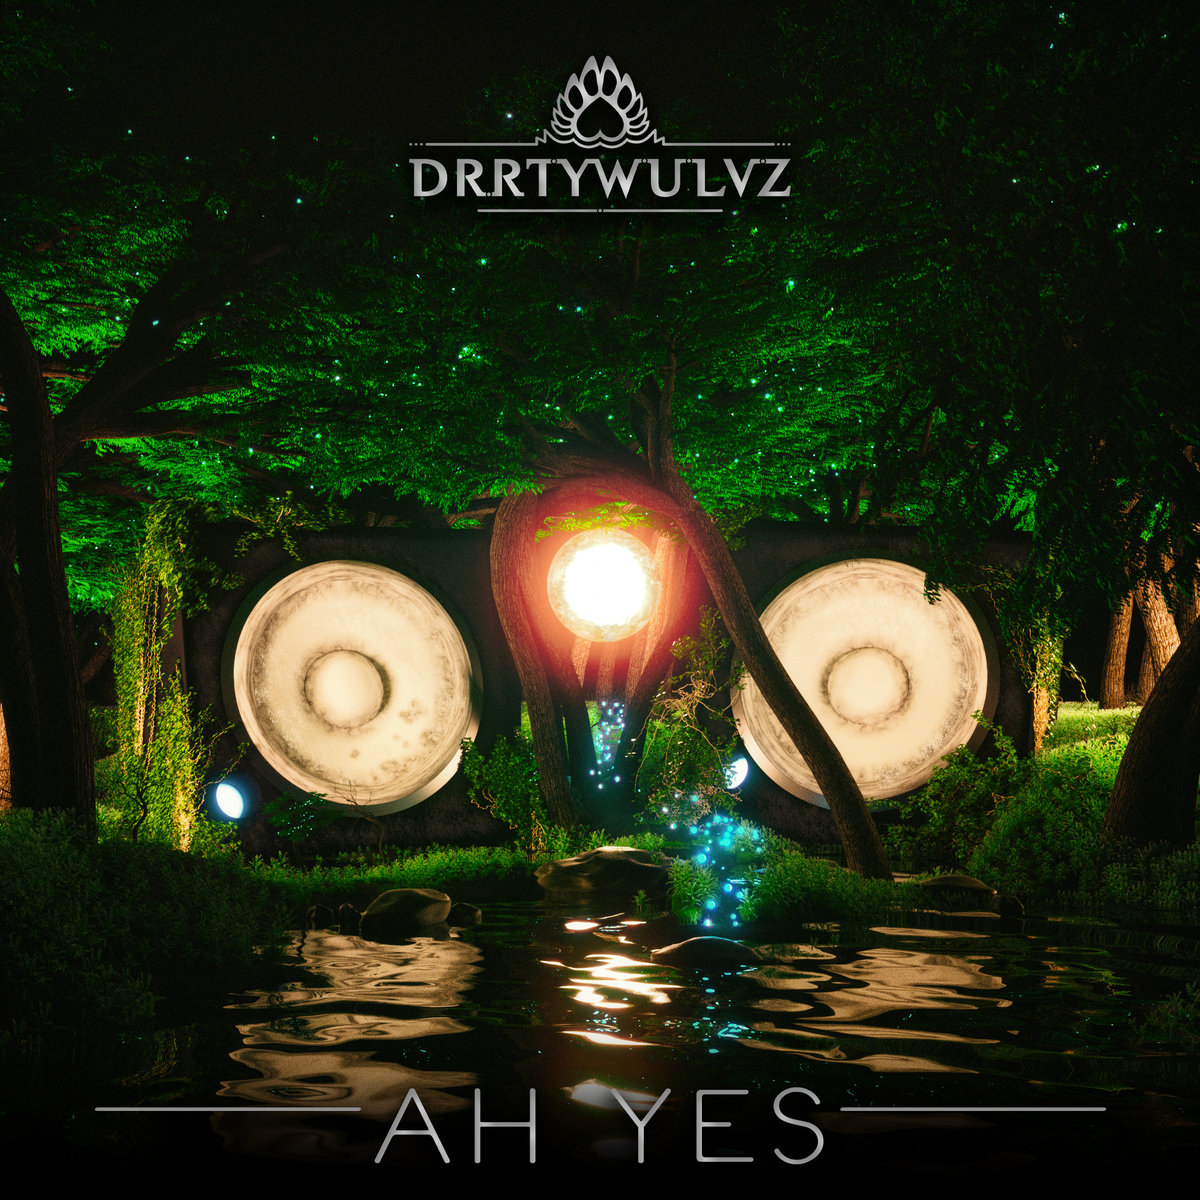 DRRTYWULVZ - This One @ 'Ah Yes' album (bass, drrtywulvz)